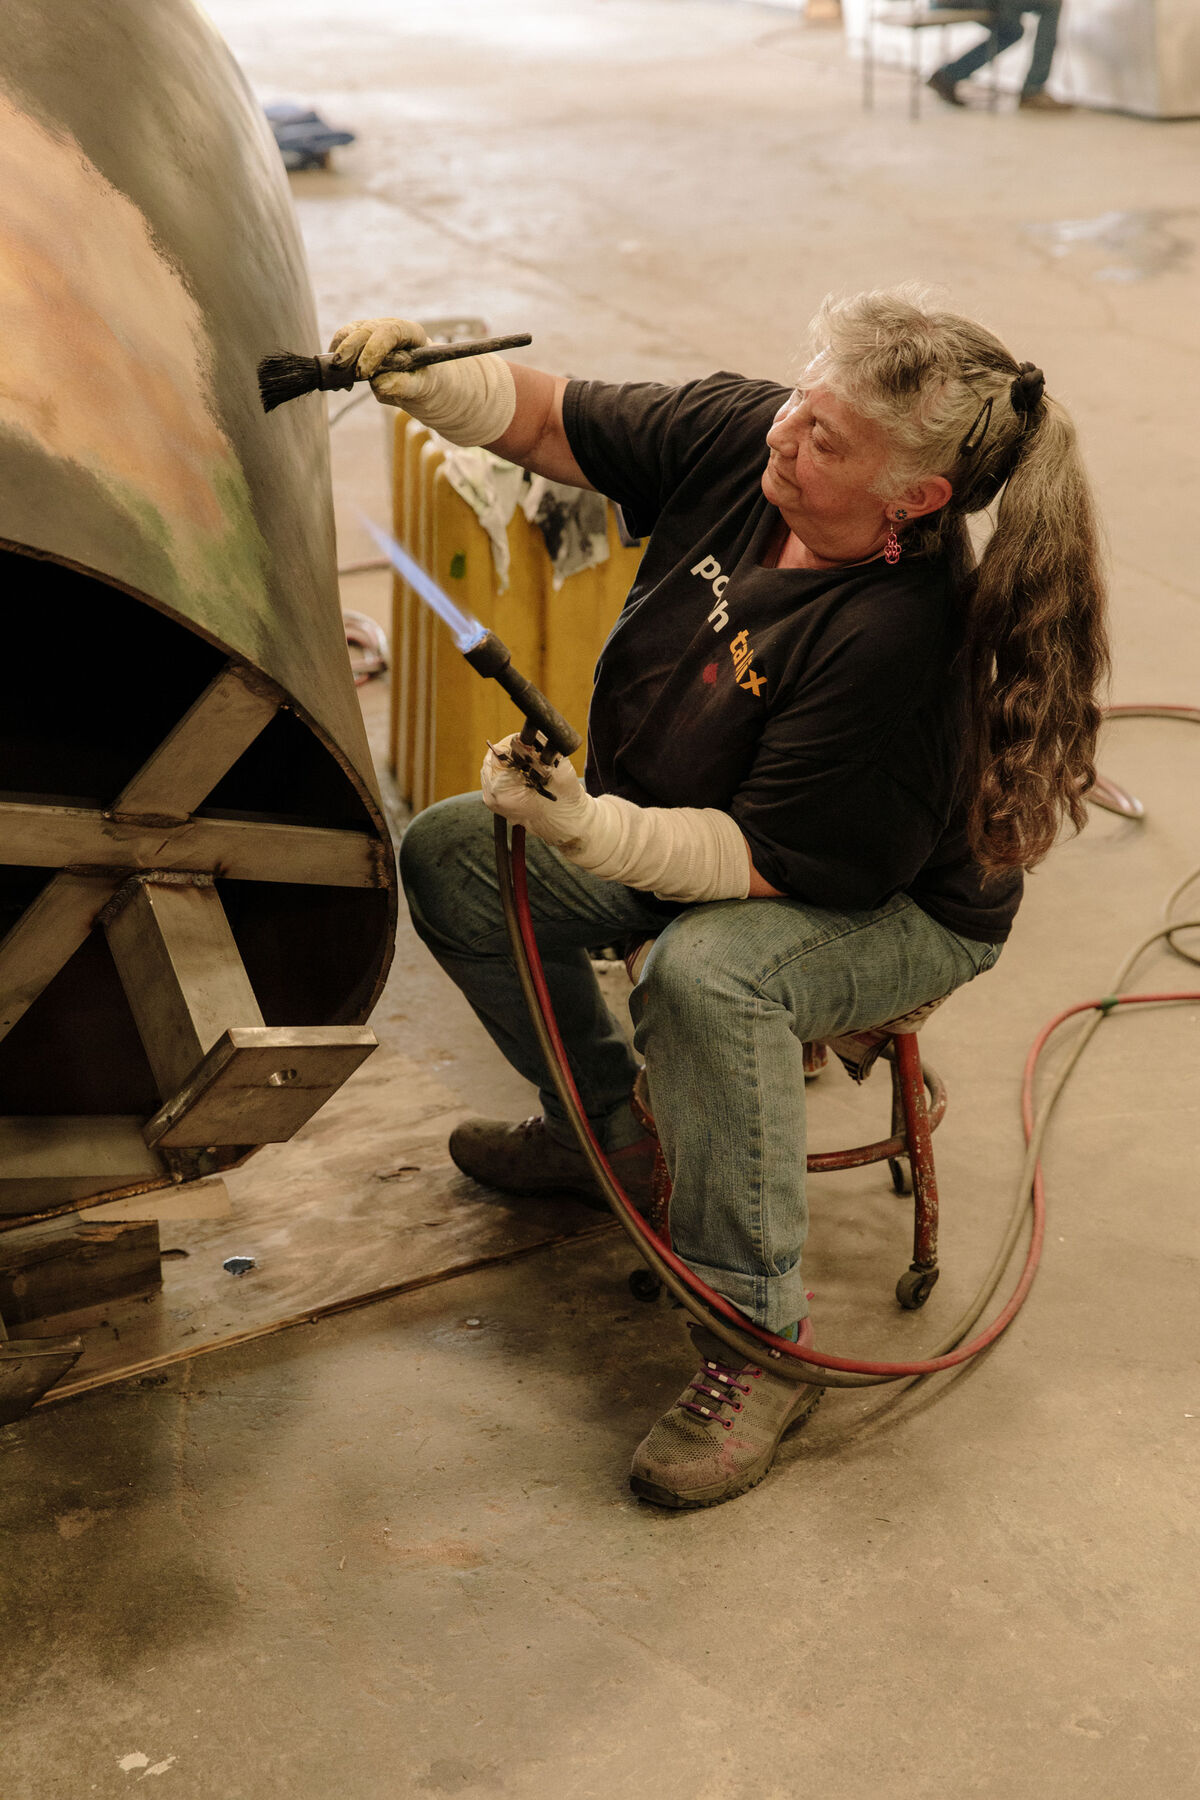 Rosemary Rednour is applying hot patina to a sculpture by Jim Sardonis. Photo by Ricky Rhodes for Artsy.